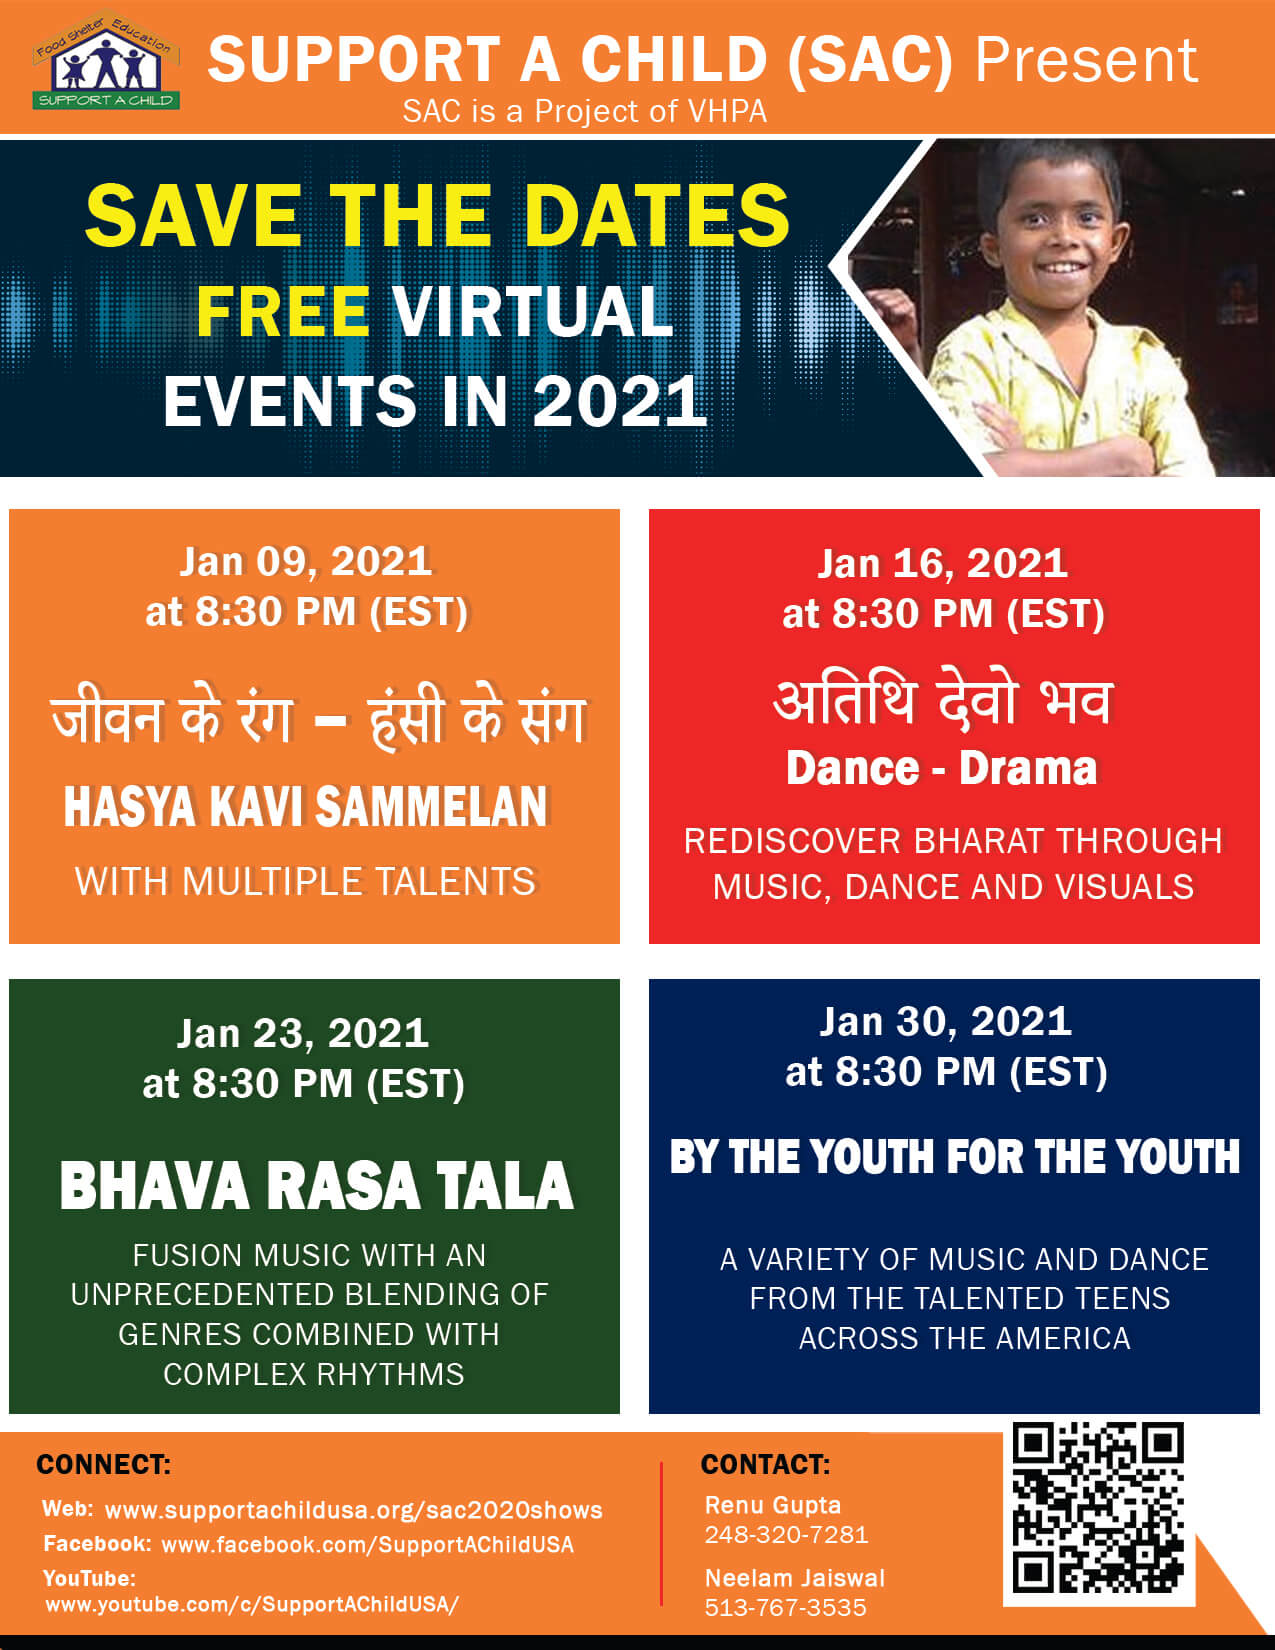 SACSave2021Dates